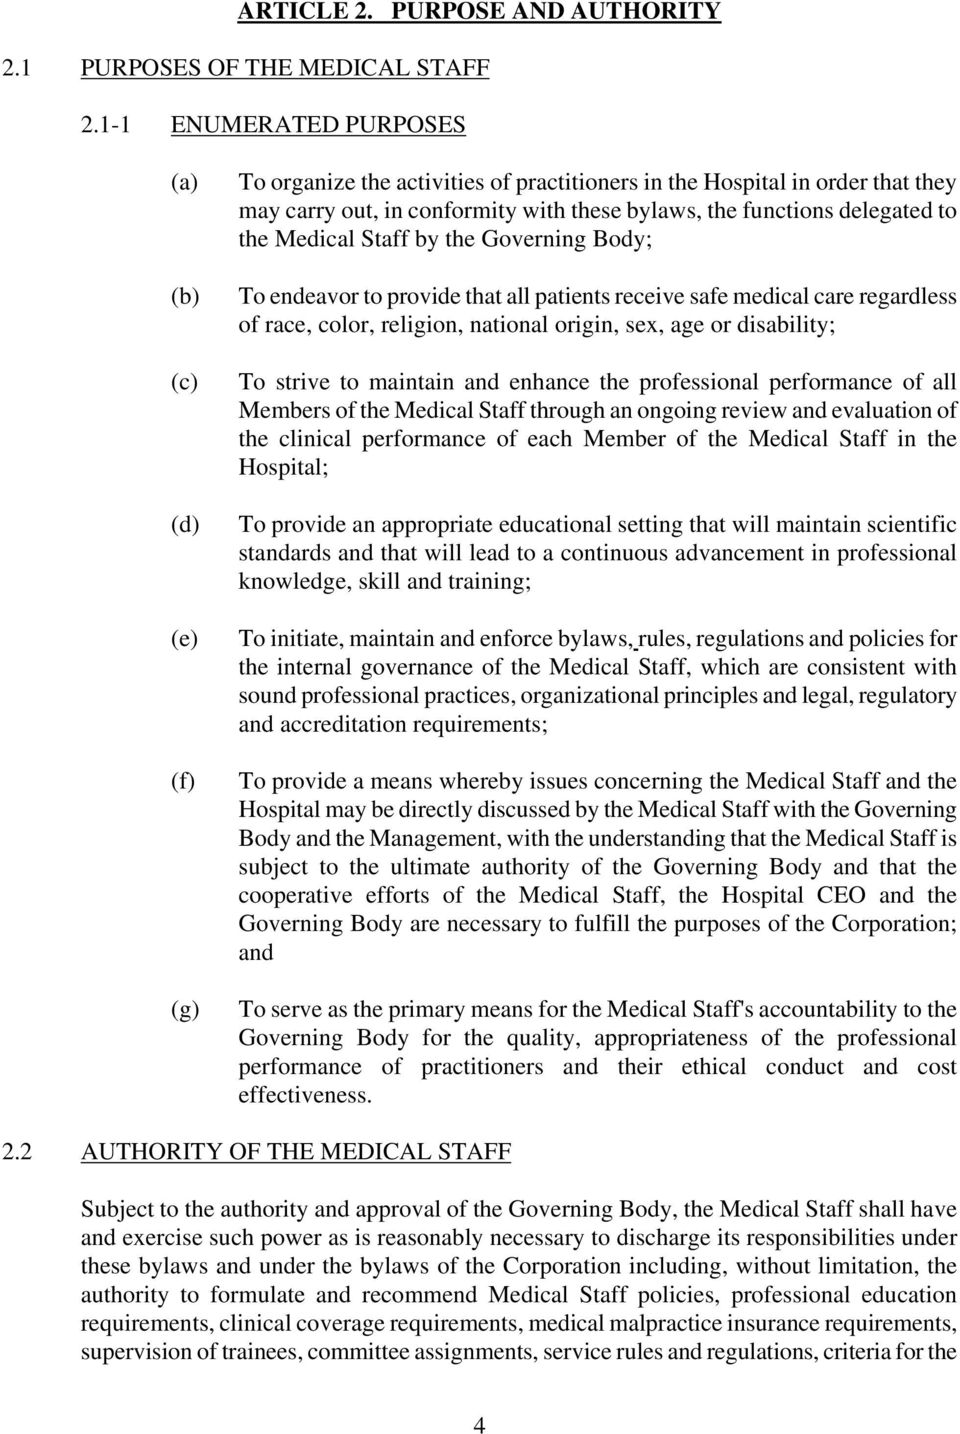 the Medical Staff by the Governing Body; To endeavor to provide that all patients receive safe medical care regardless of race, color, religion, national origin, sex, age or disability; To strive to